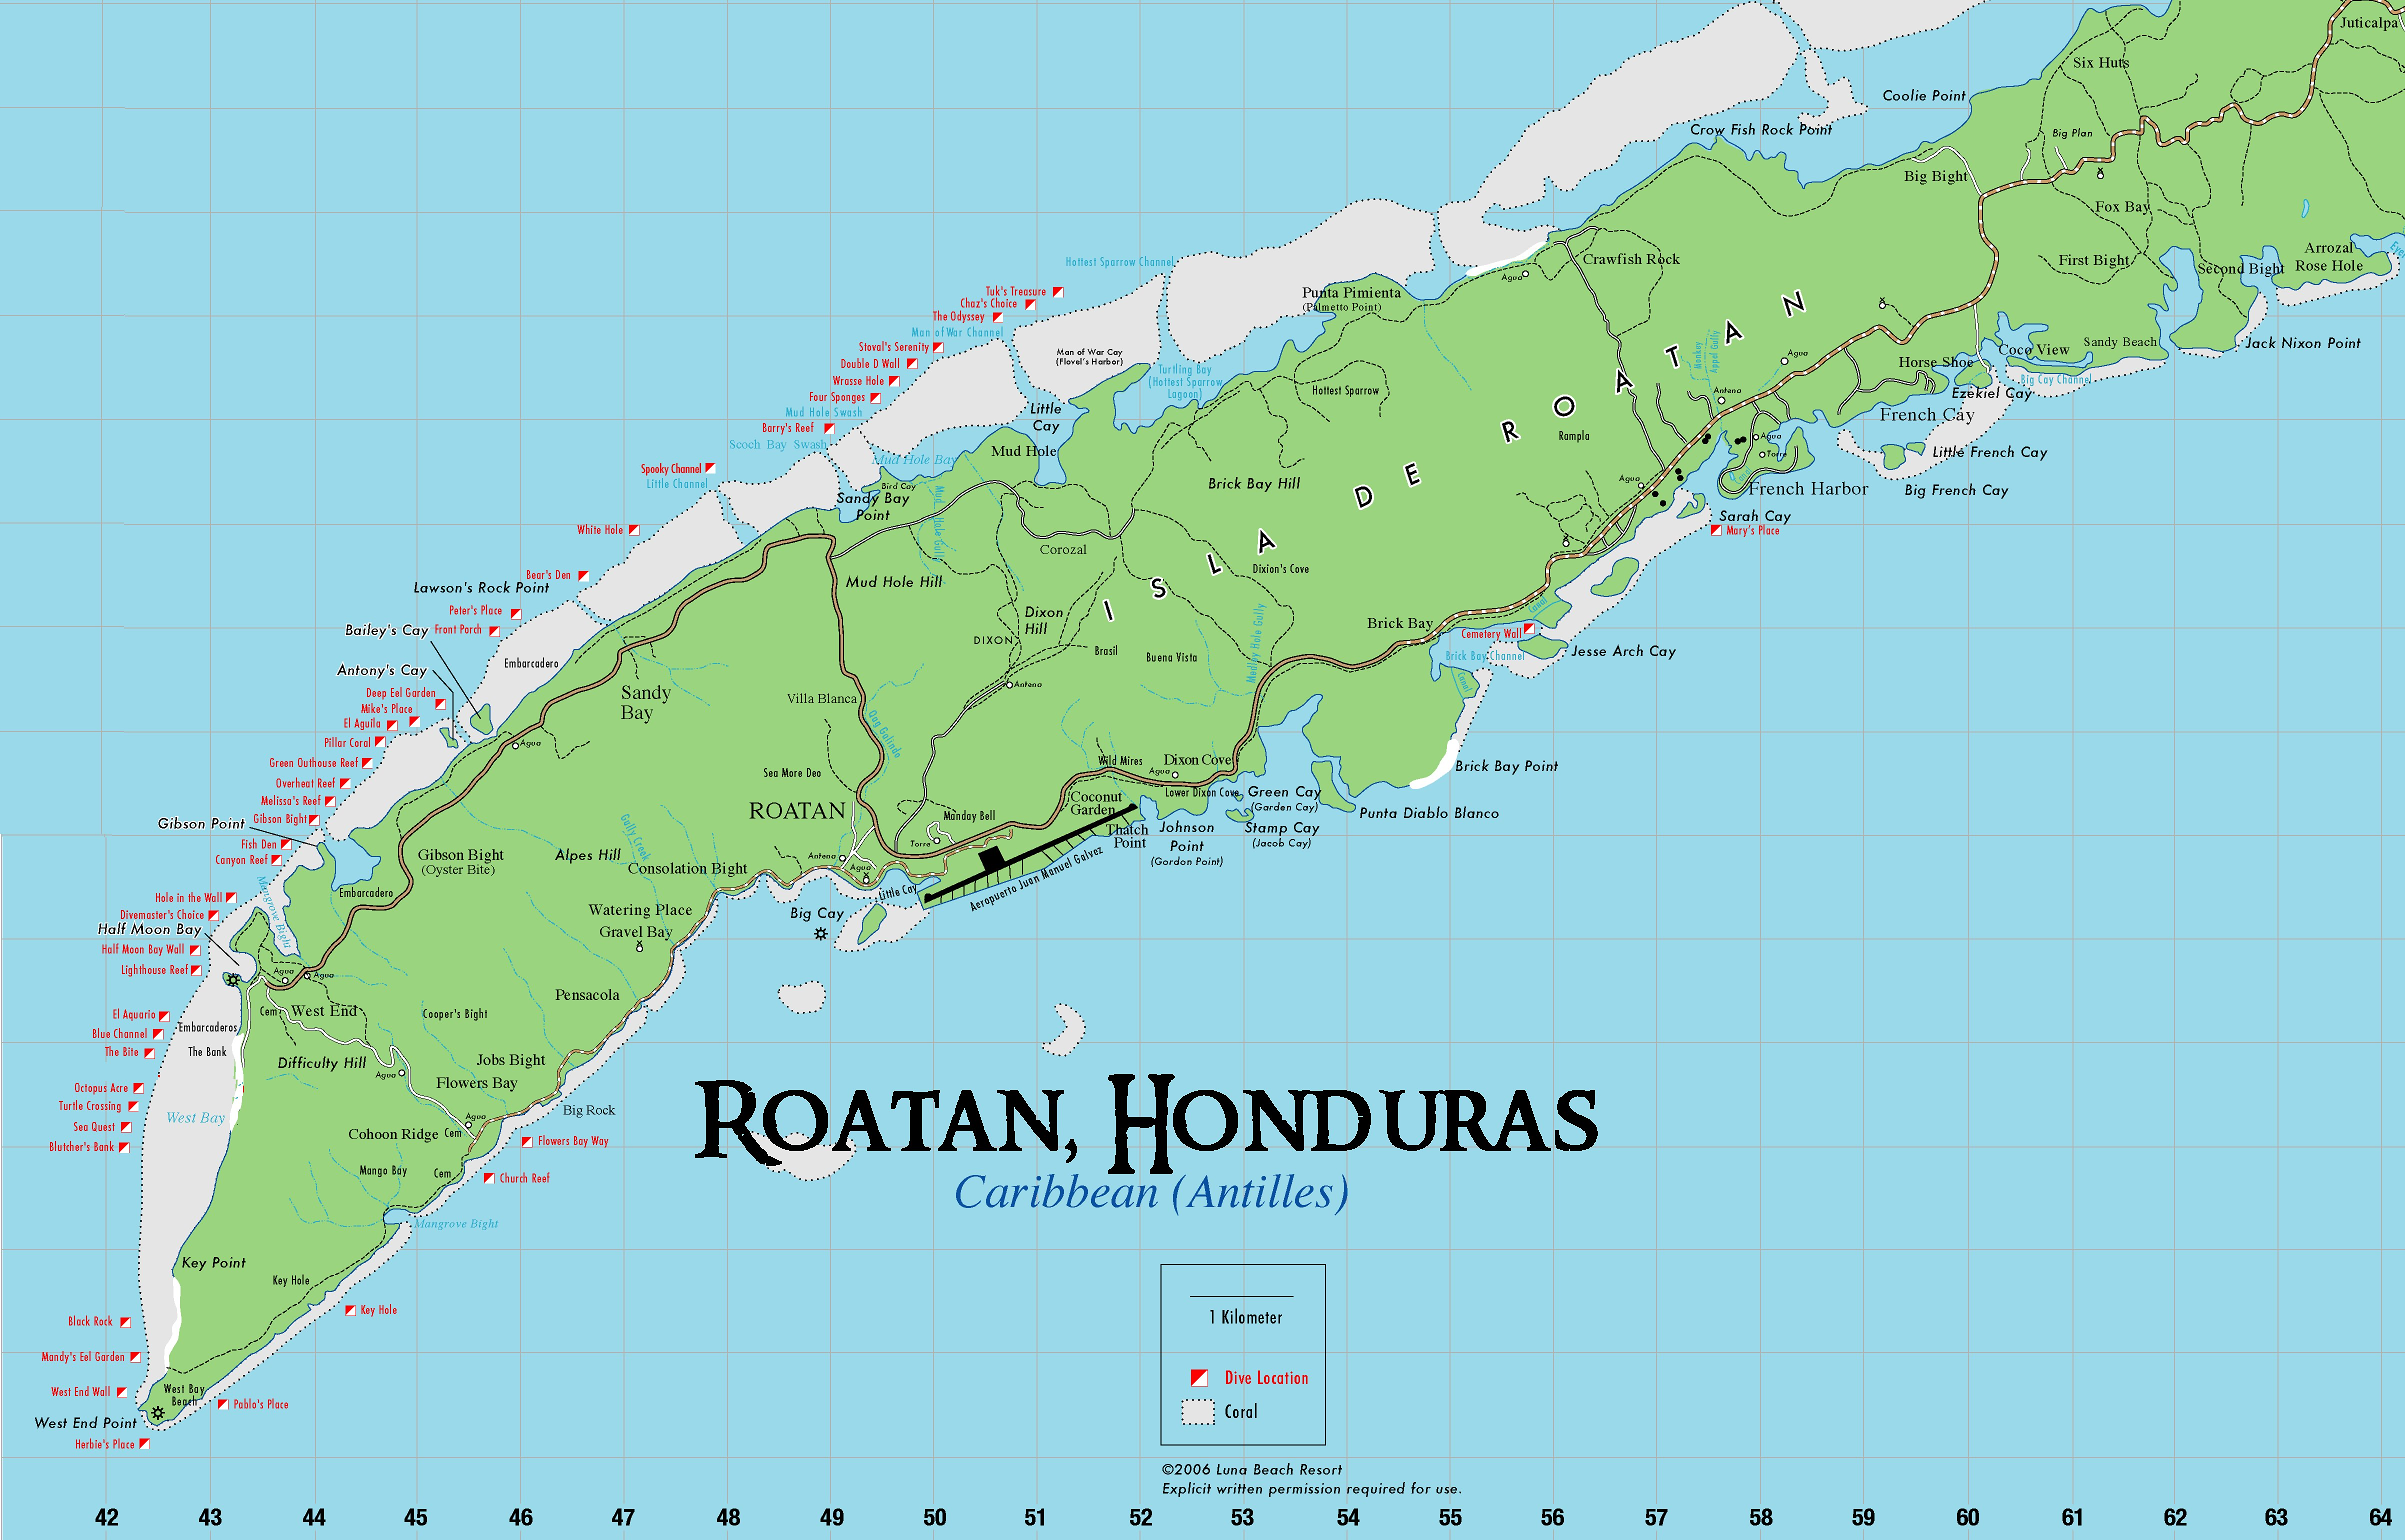 top scuba dive sites in roatan honduras and the bay islands  theindefinite journey. top scuba dive sites in roatan honduras and the bay islands  the